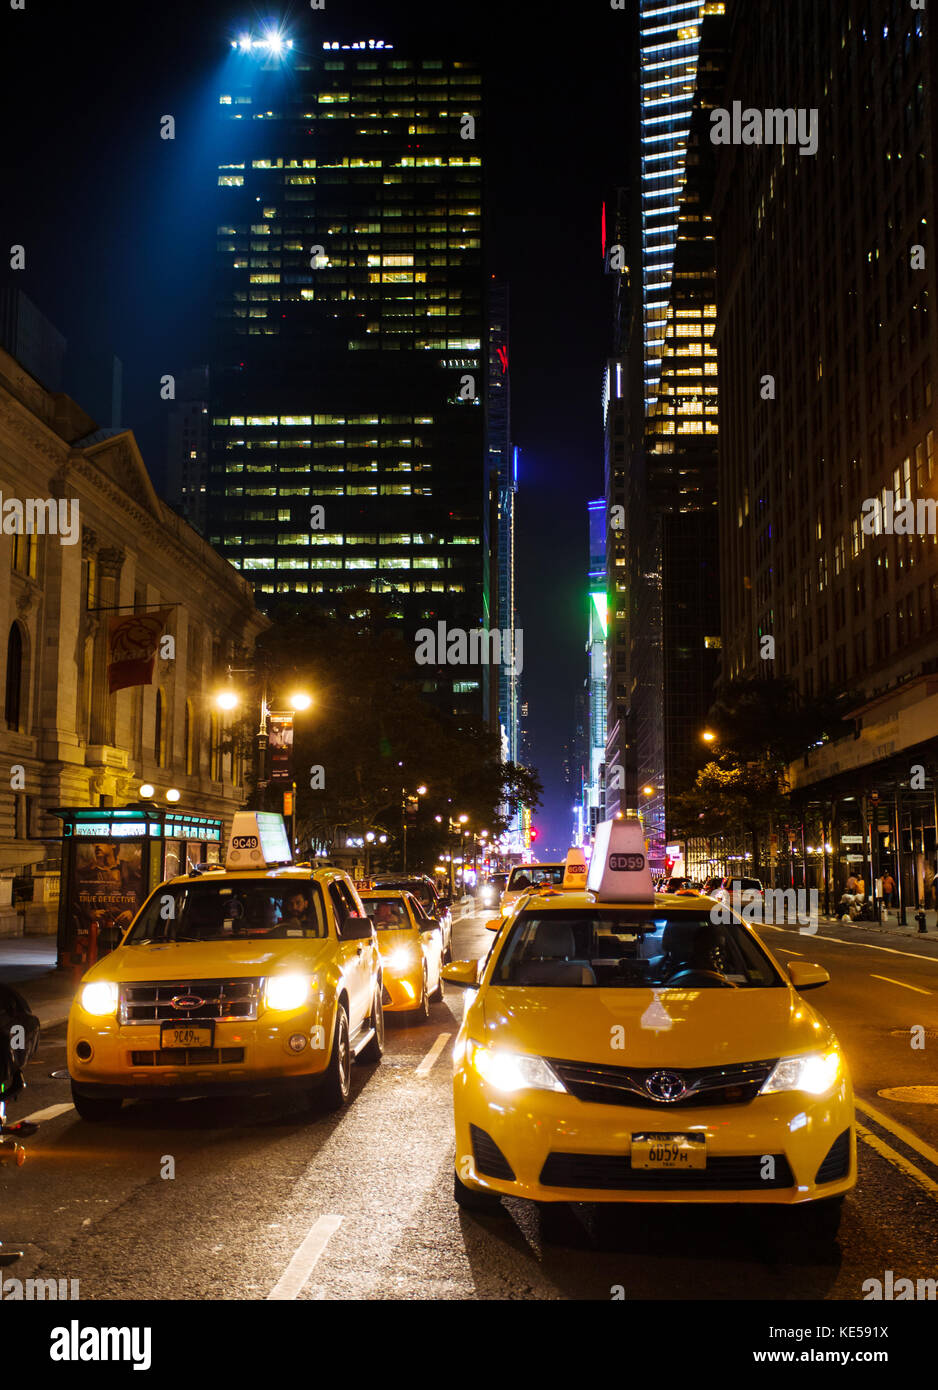 New York City, Usa - July 12, 2015: Traffic with many yellow cabs in downtown Manhattan on 42nd Sreet by night. - Stock Image